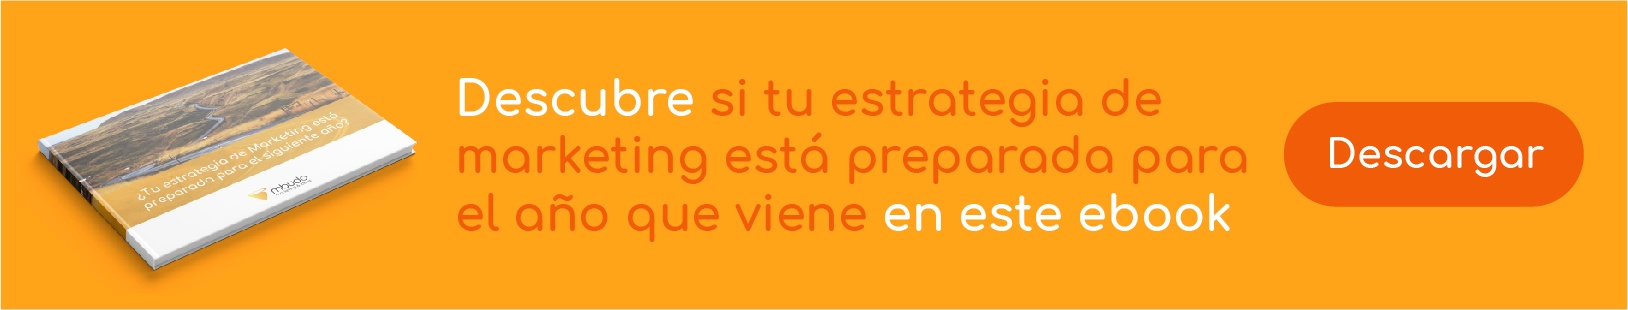 estrategia de inbound marketing preparada 2020 ebook